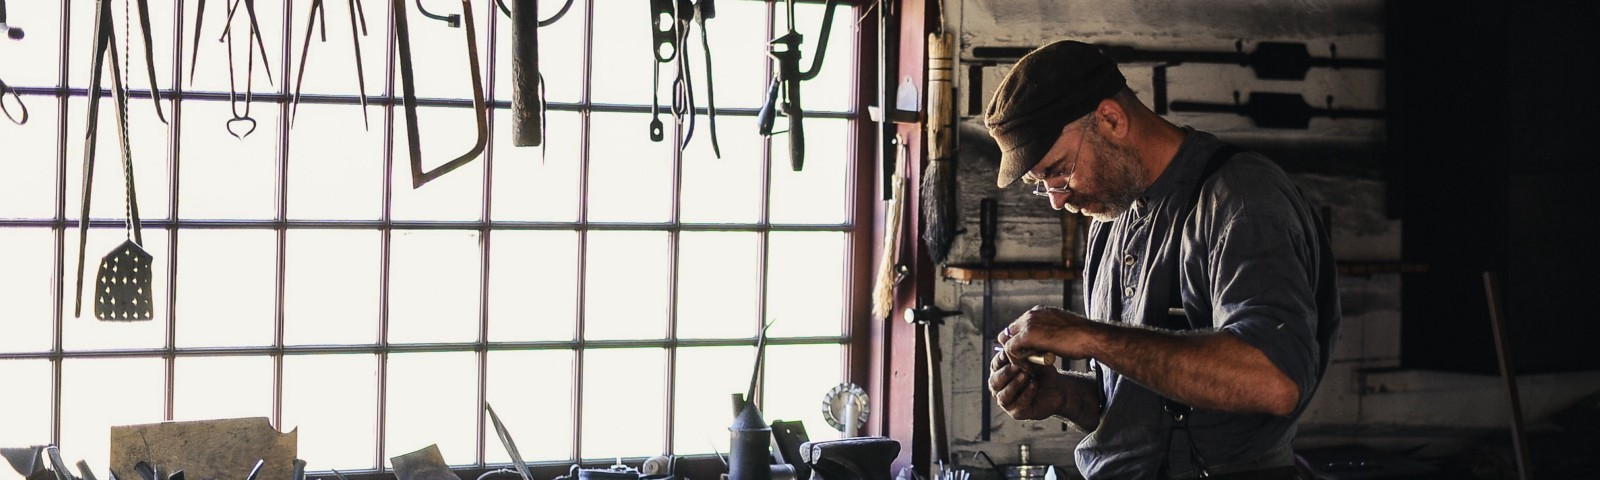 Busy Craftsman—Photo by Clark Young on Unsplash